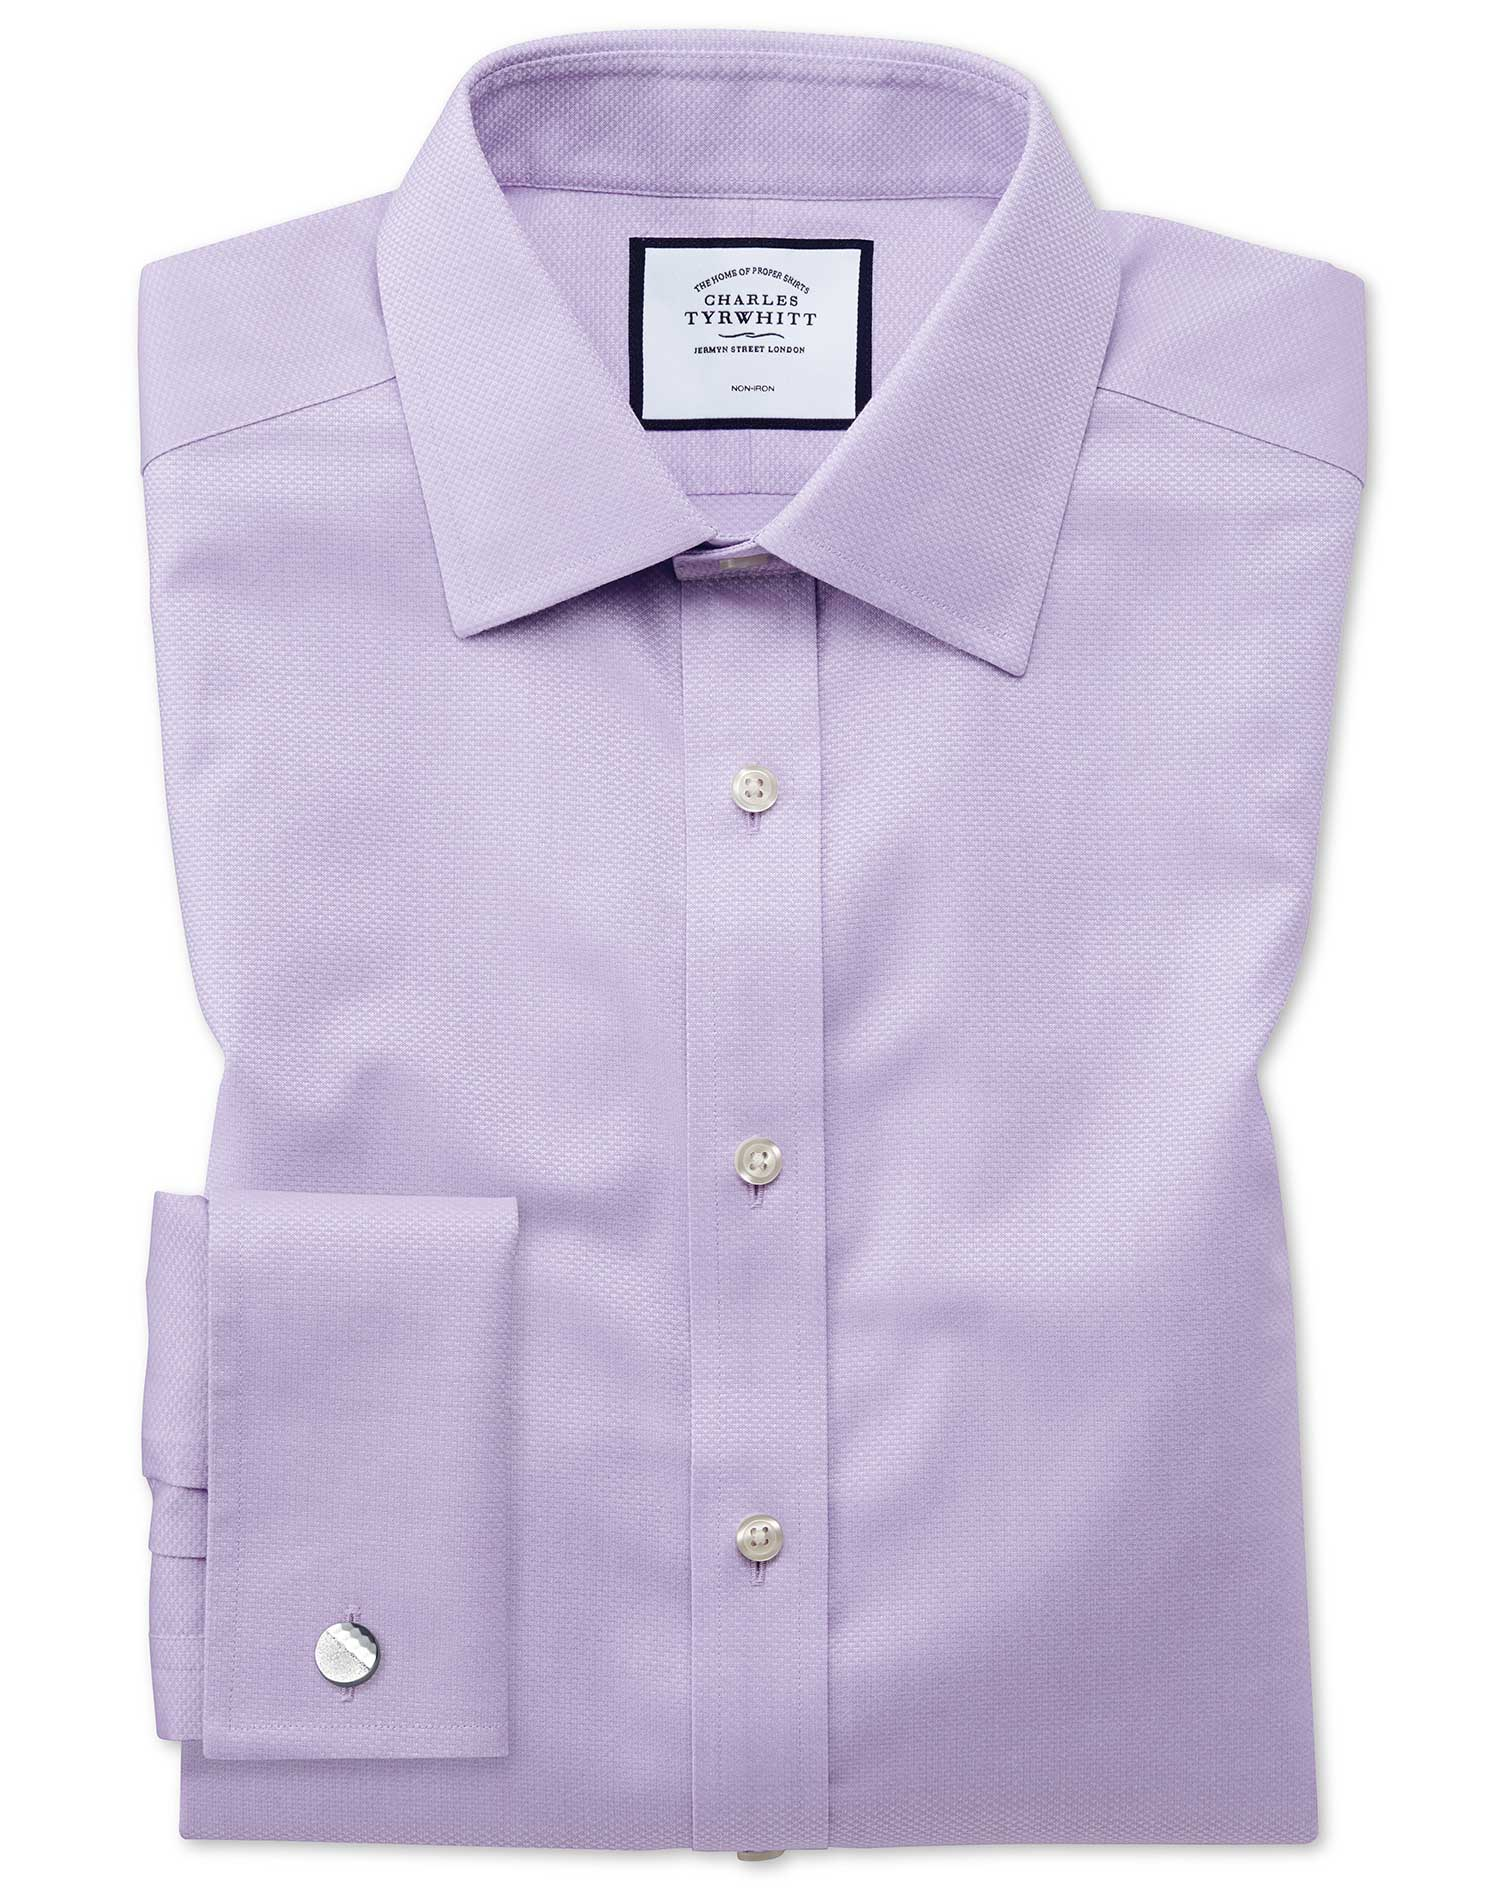 Classic Fit Non-Iron Lilac Triangle Weave Cotton Formal Shirt Double Cuff Size 16.5/36 by Charles Ty